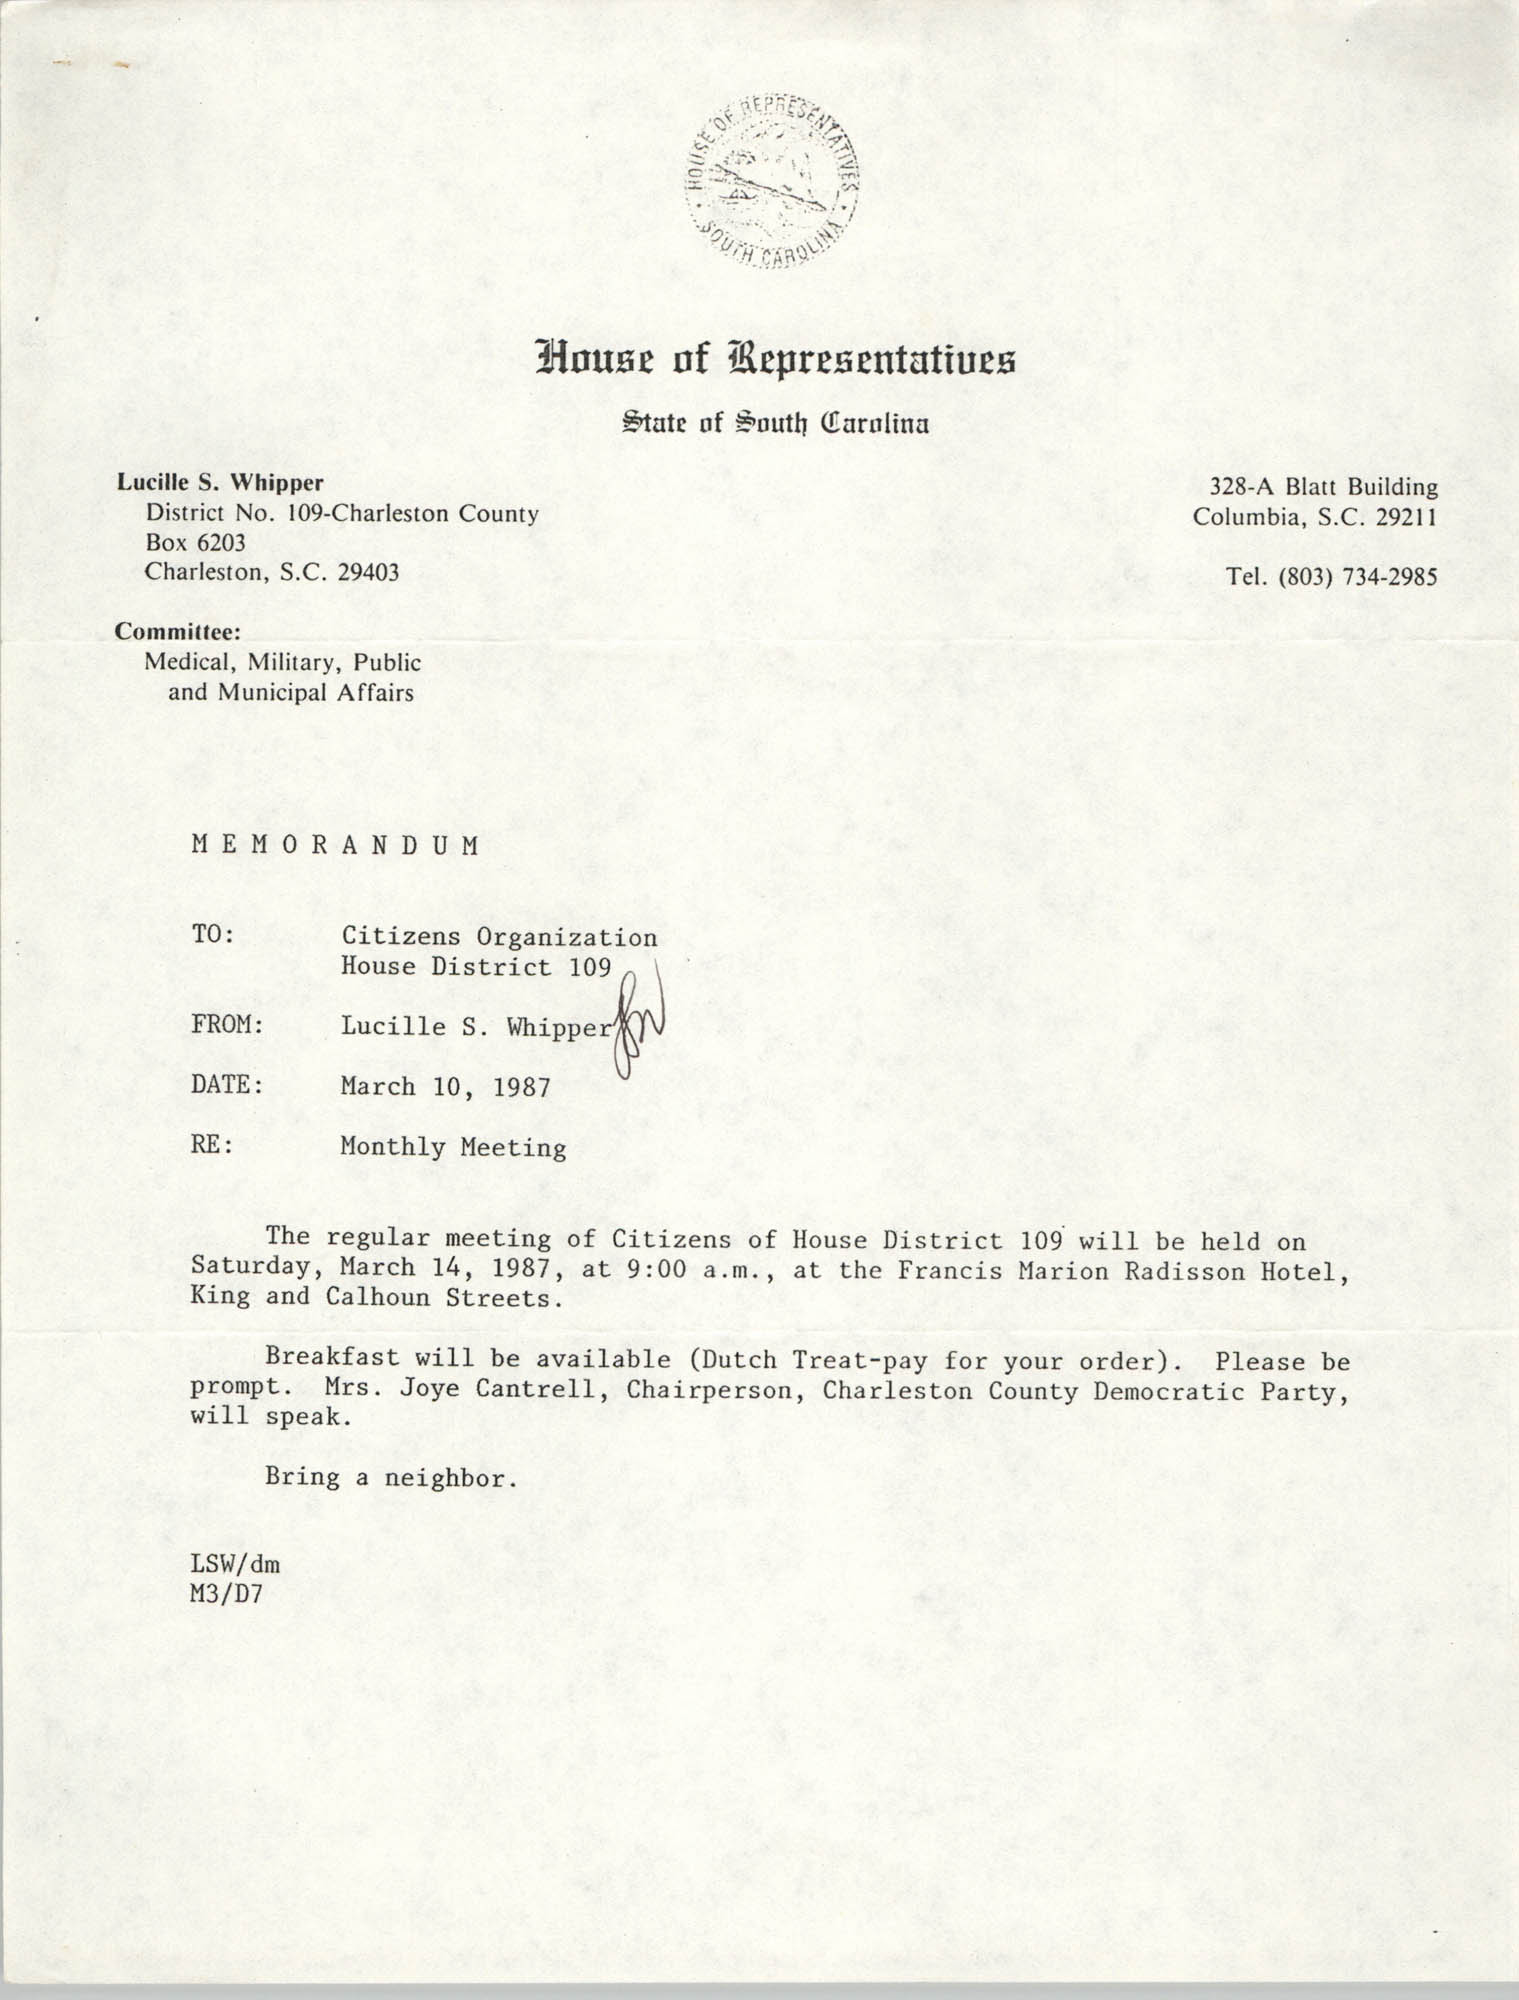 Memorandum, Lucille S. Whipper, March 10, 1987